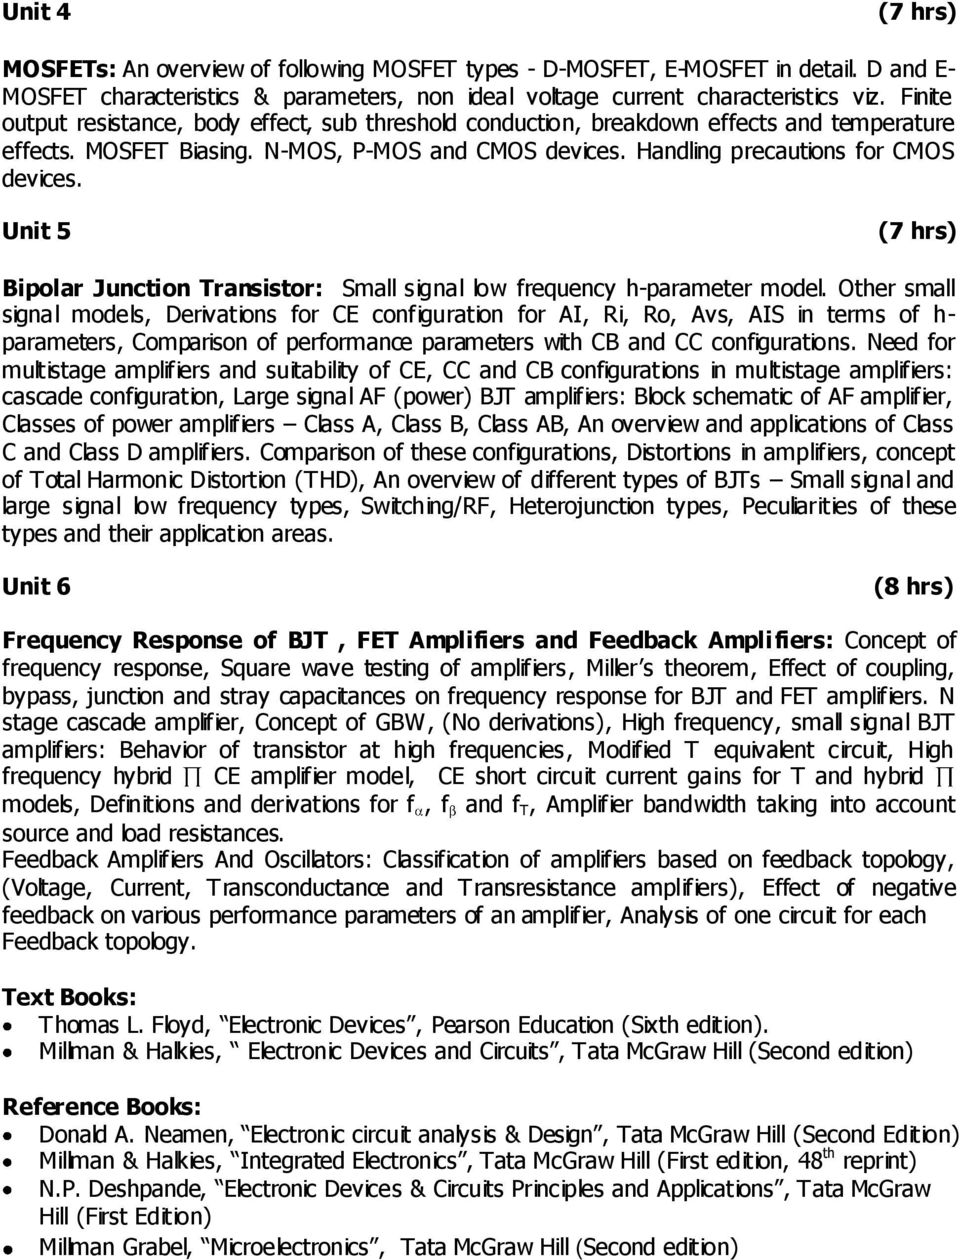 Electronics And Telecommunication Engineering Sy B Tech Electronic Circuit Analysis Design Neamen Free Download Unit 5 7 Hrs Bipolar Junction Transistor Small Signal Low Frequency H